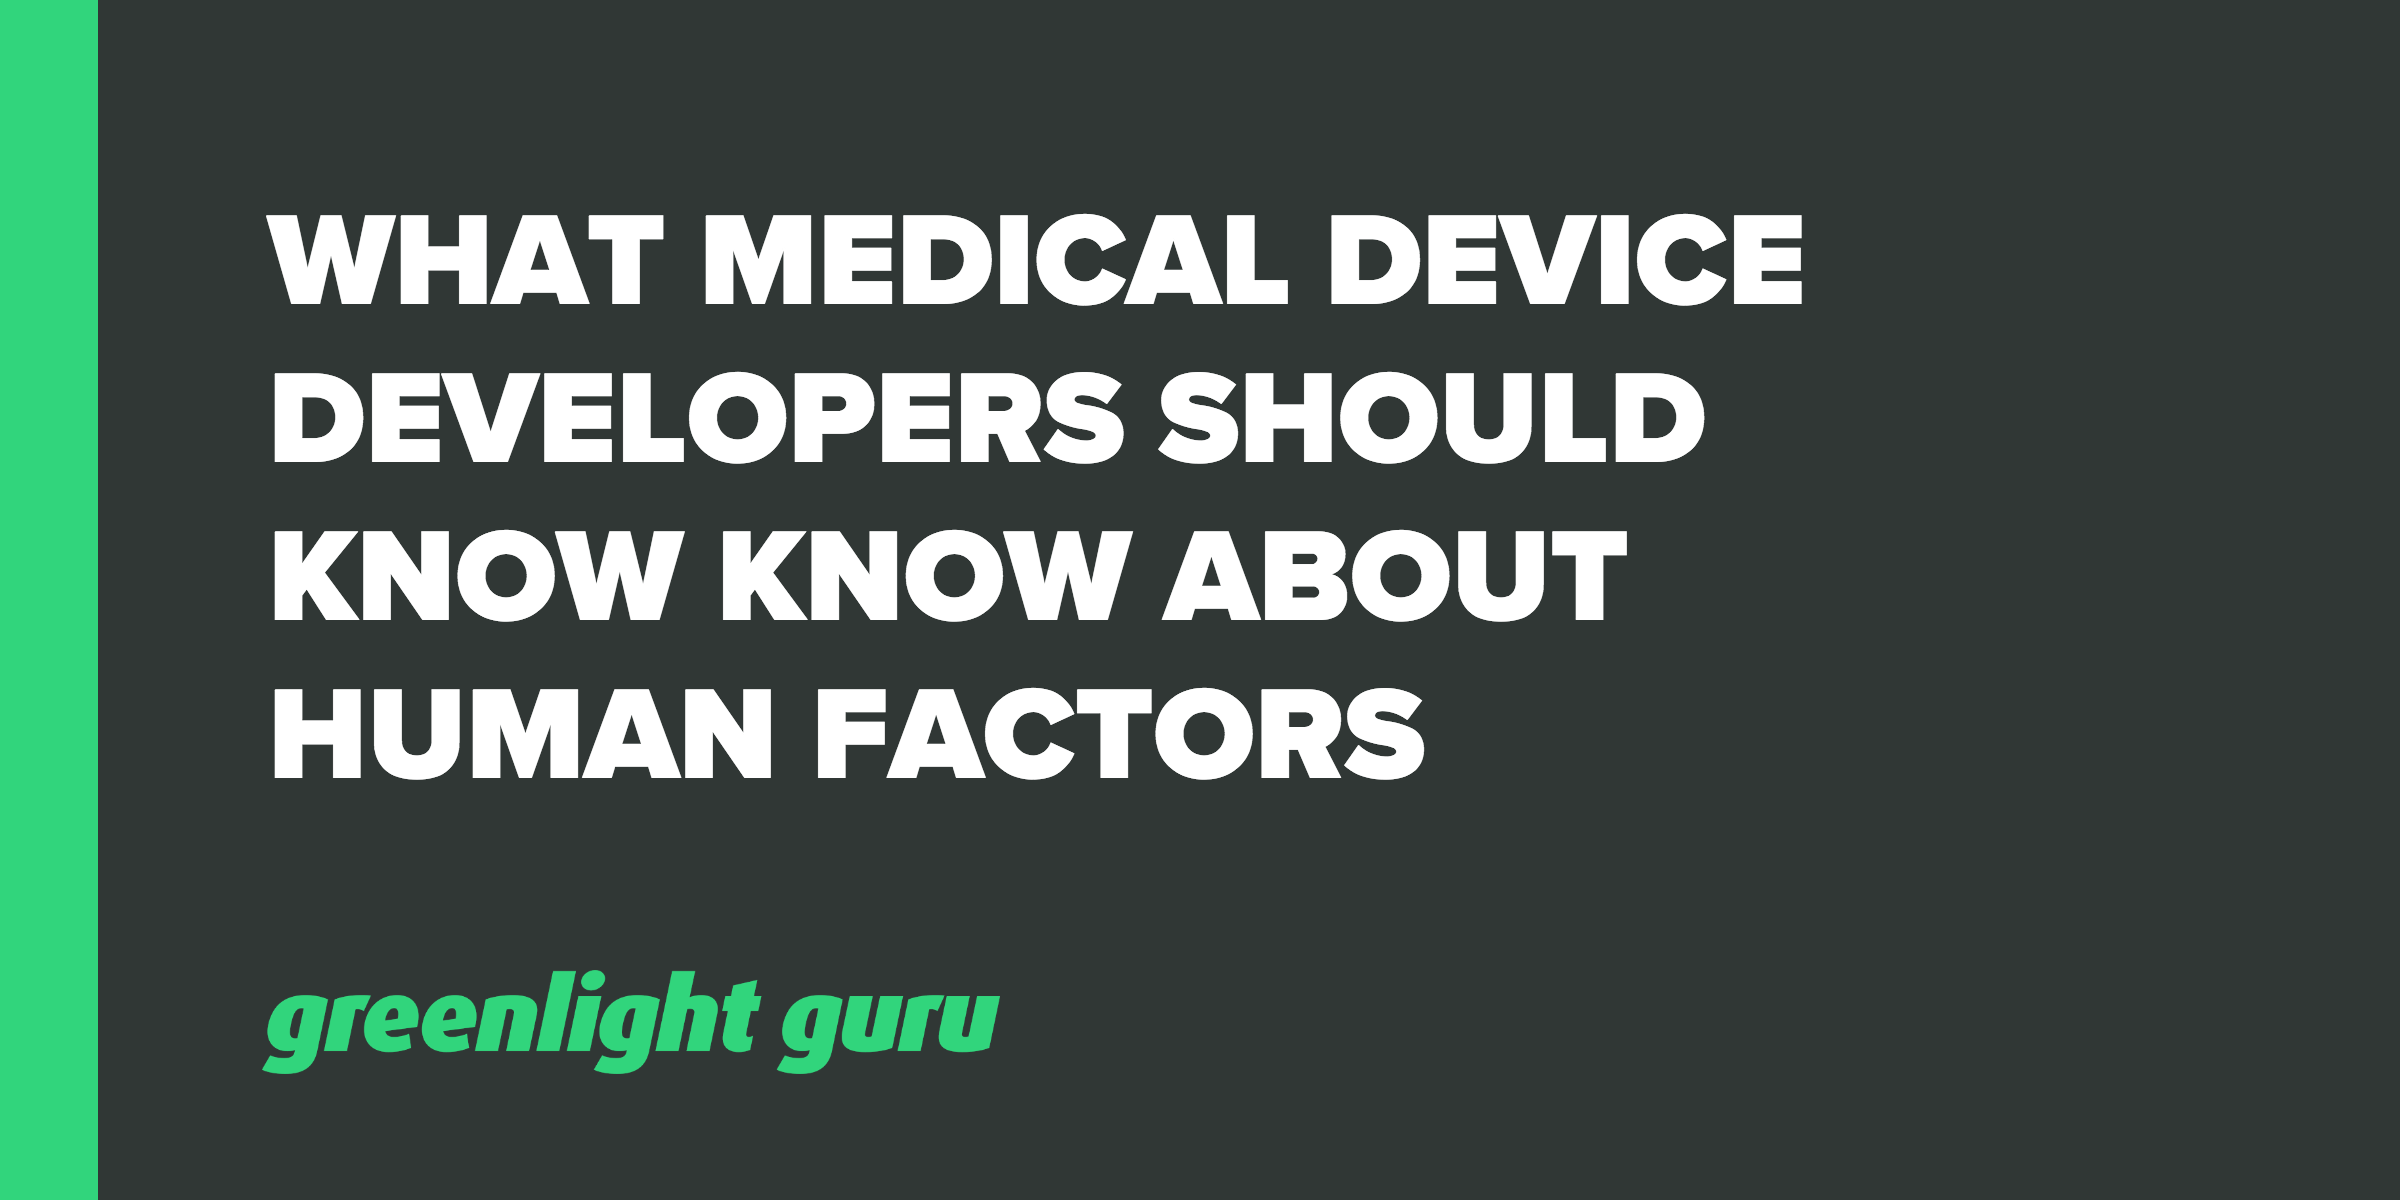 What Medical Device Developers Should Know About Human Factors - Featured Image